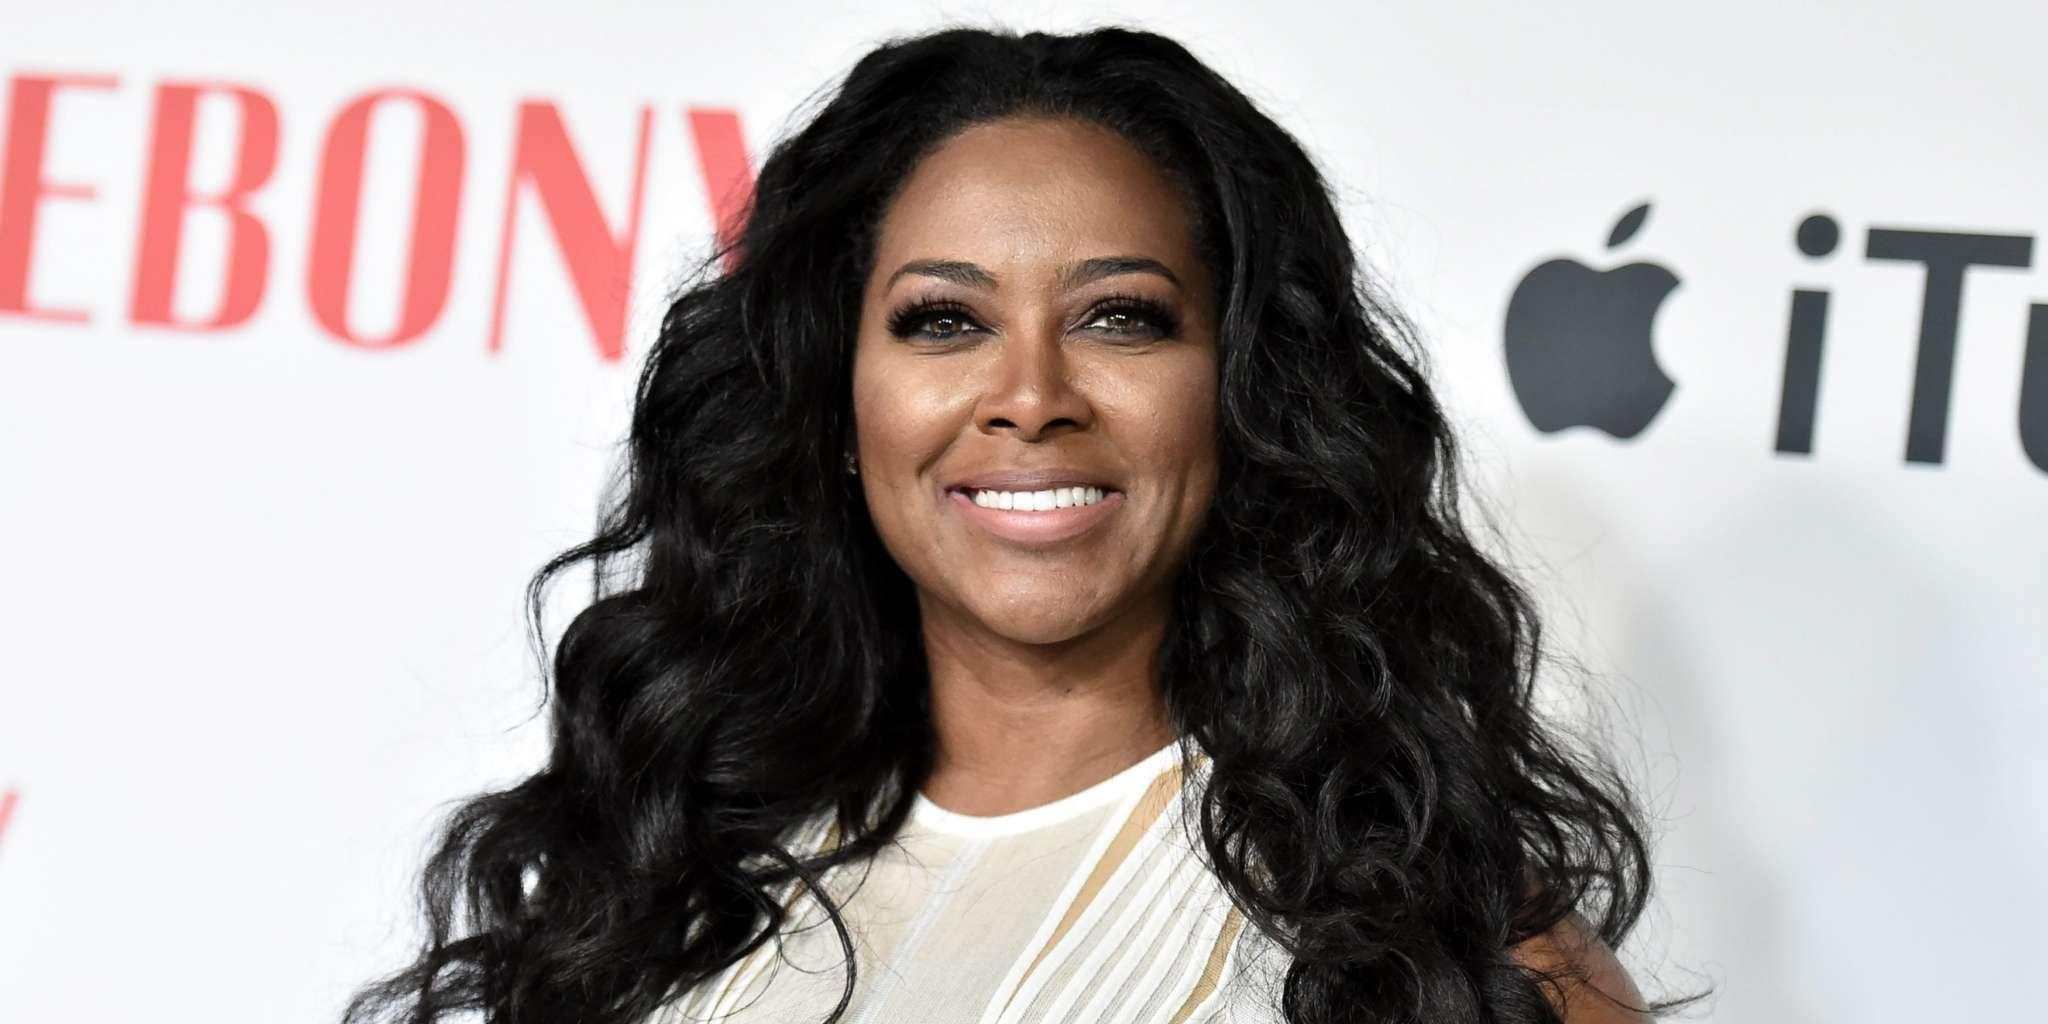 Kenya Moore's Fans Are Amazed By How 'Polished And Fly' She Looks In Her Alexander McQueen Outfit: 'You Look Like A Well-Kept Wife'